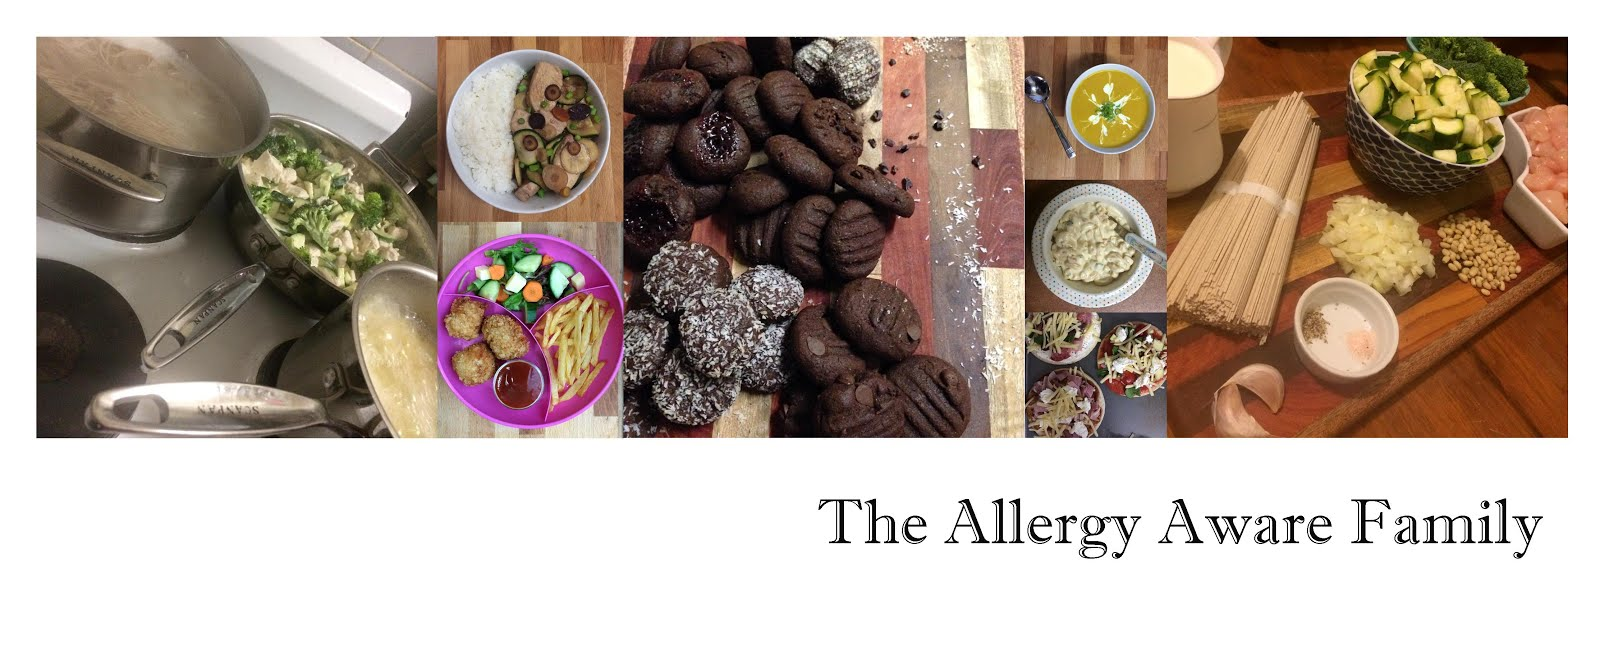 The Allergy Aware Family